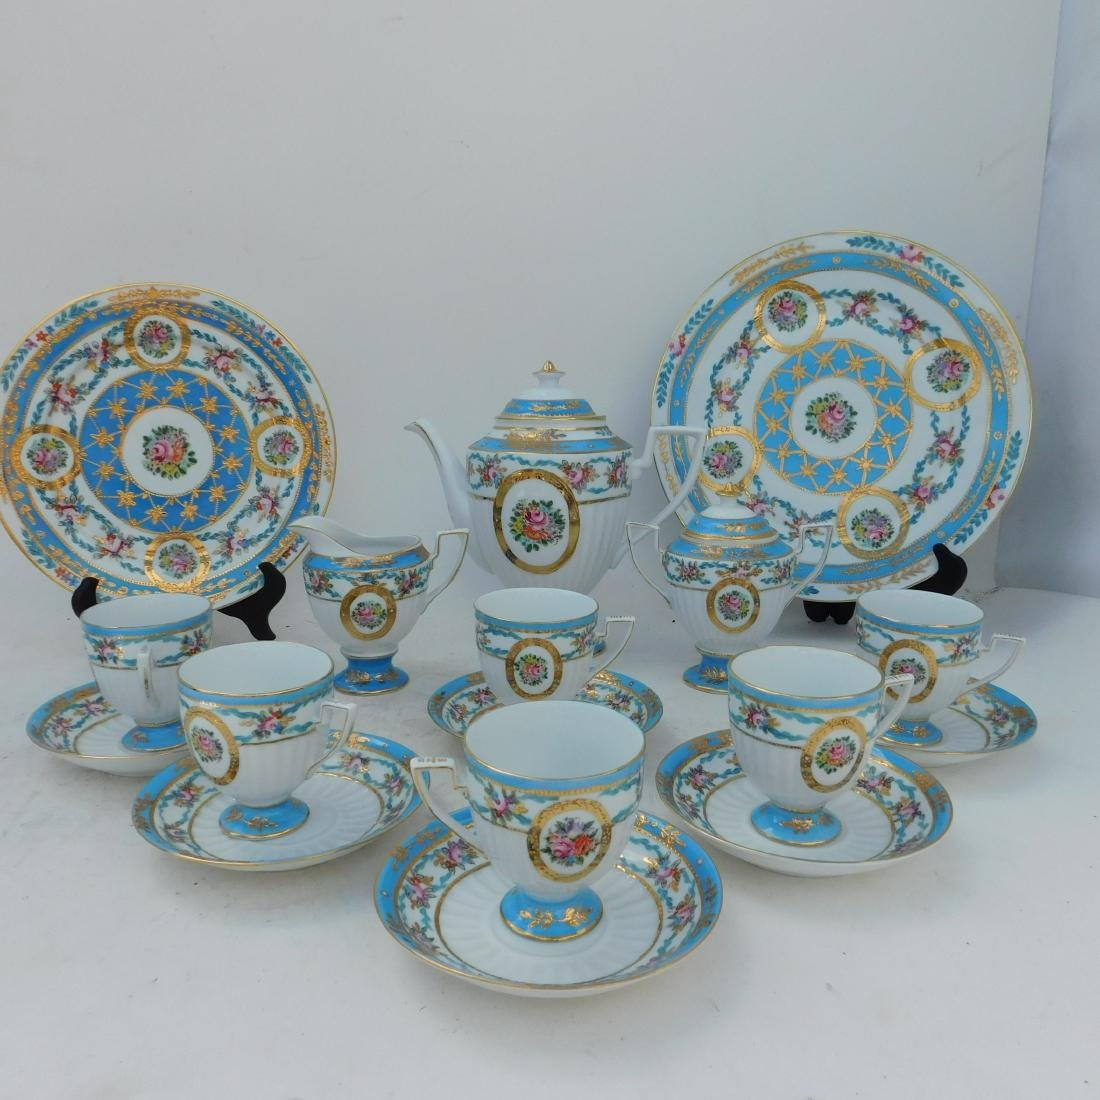 KPM Partial Coffee and Dessert Service In Turquois - 3